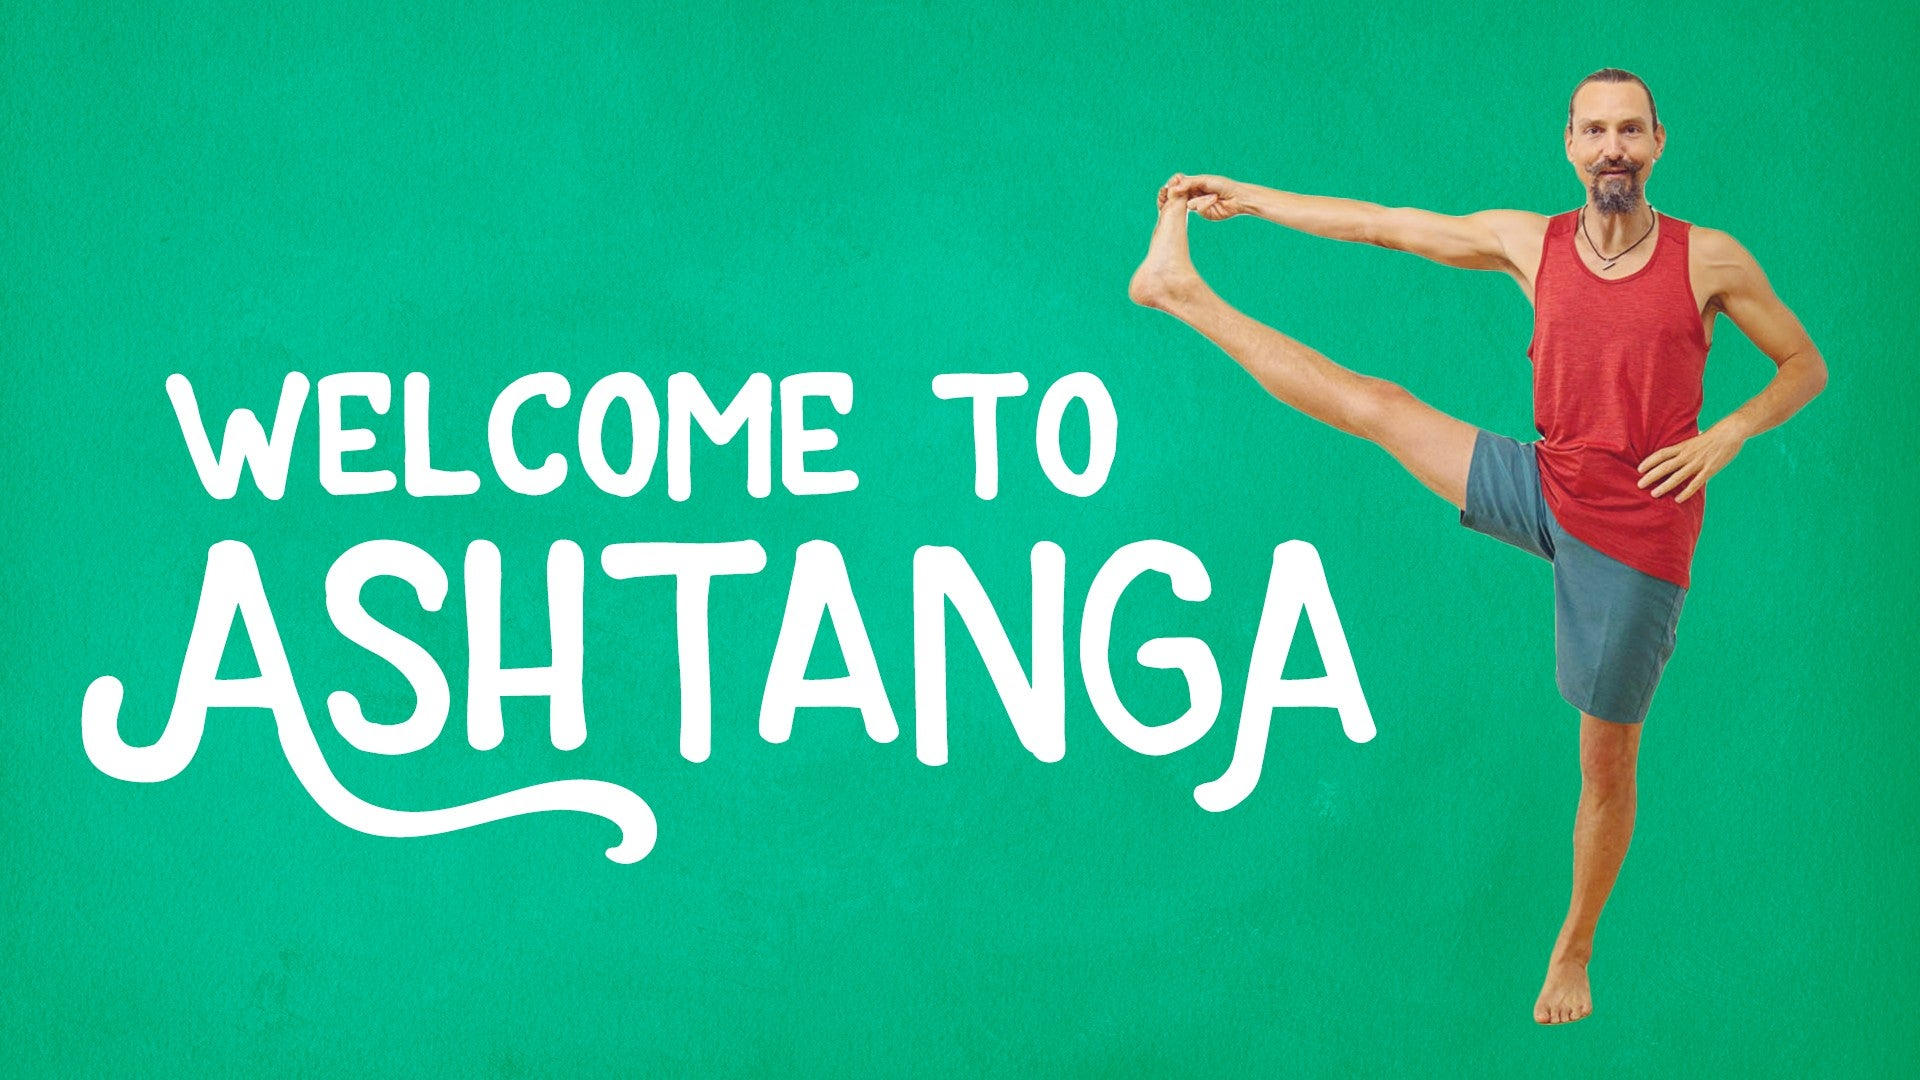 Welcome to Ashtanga Artwork